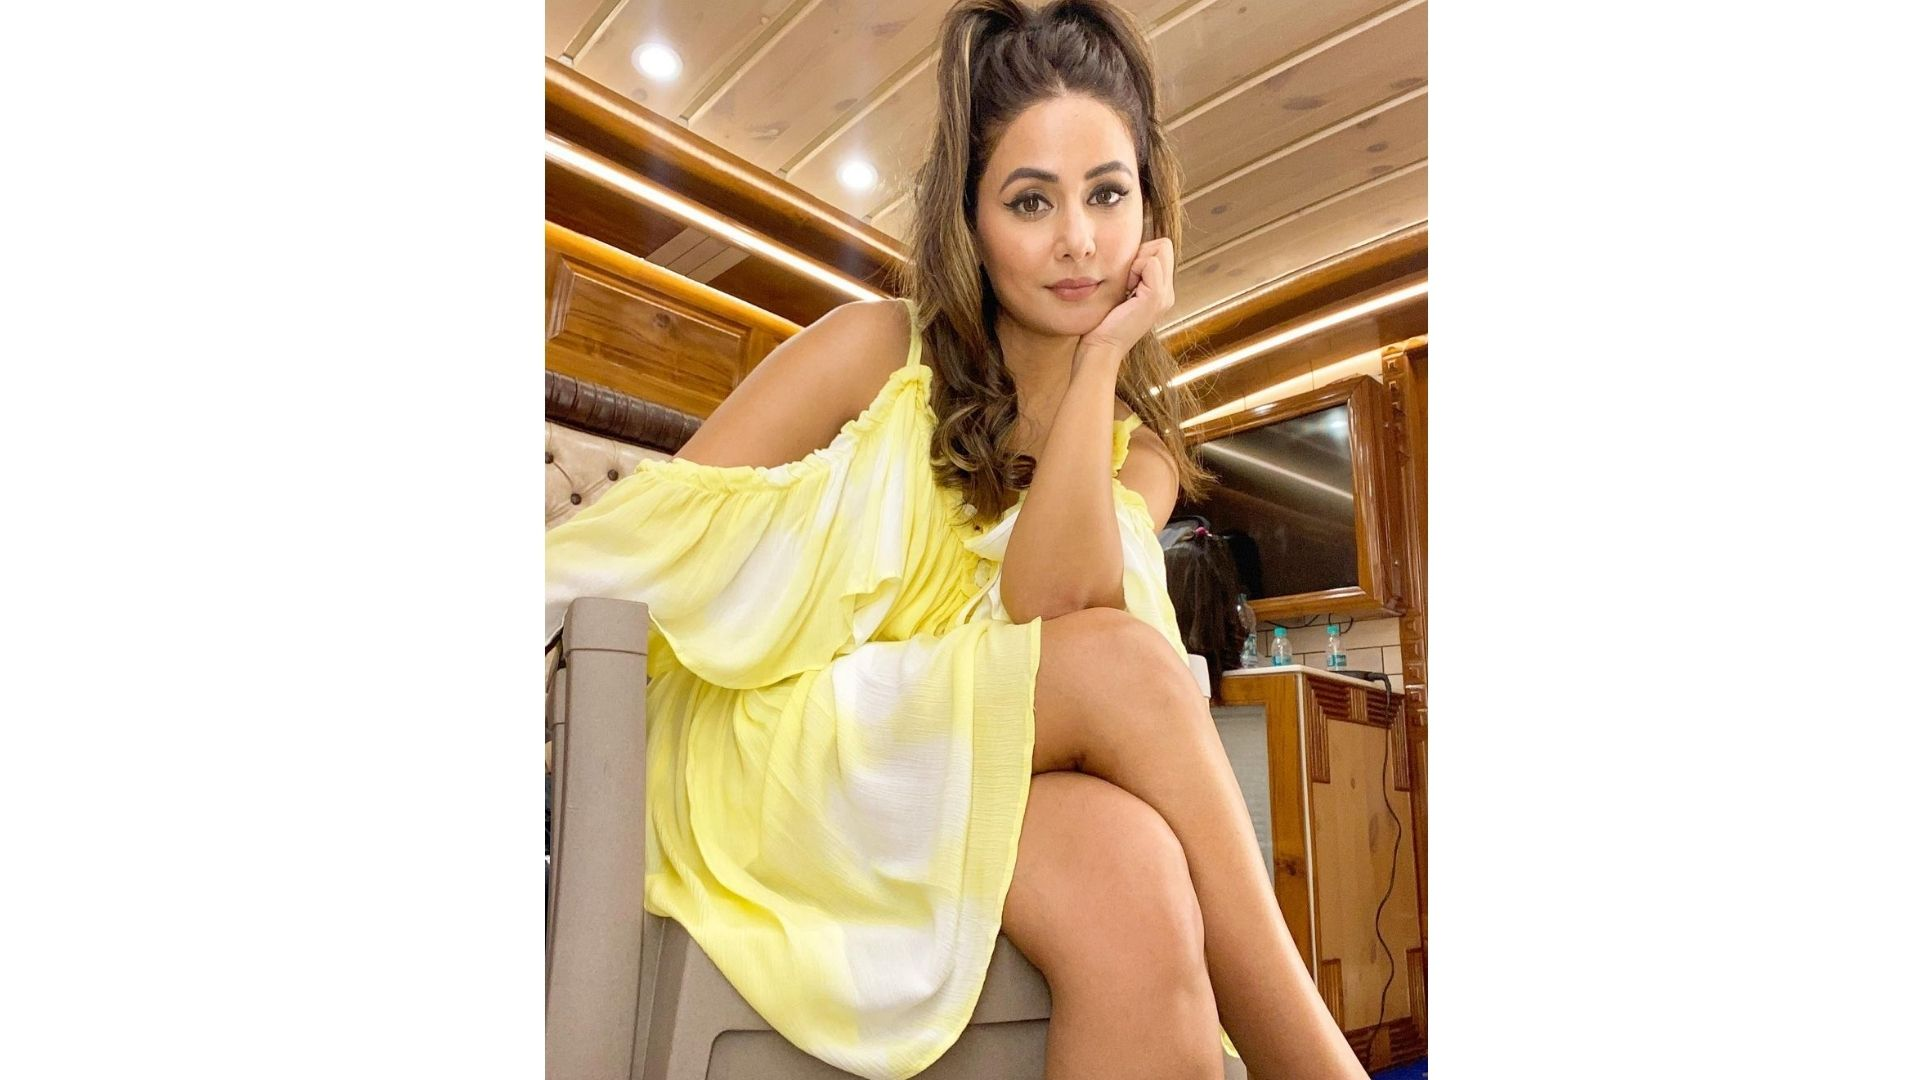 Even After Being Such A Successful Actress, Hina Khan Still Gets Asked About Her Details During Auditions; Her Reaction Will Melt Your Heart